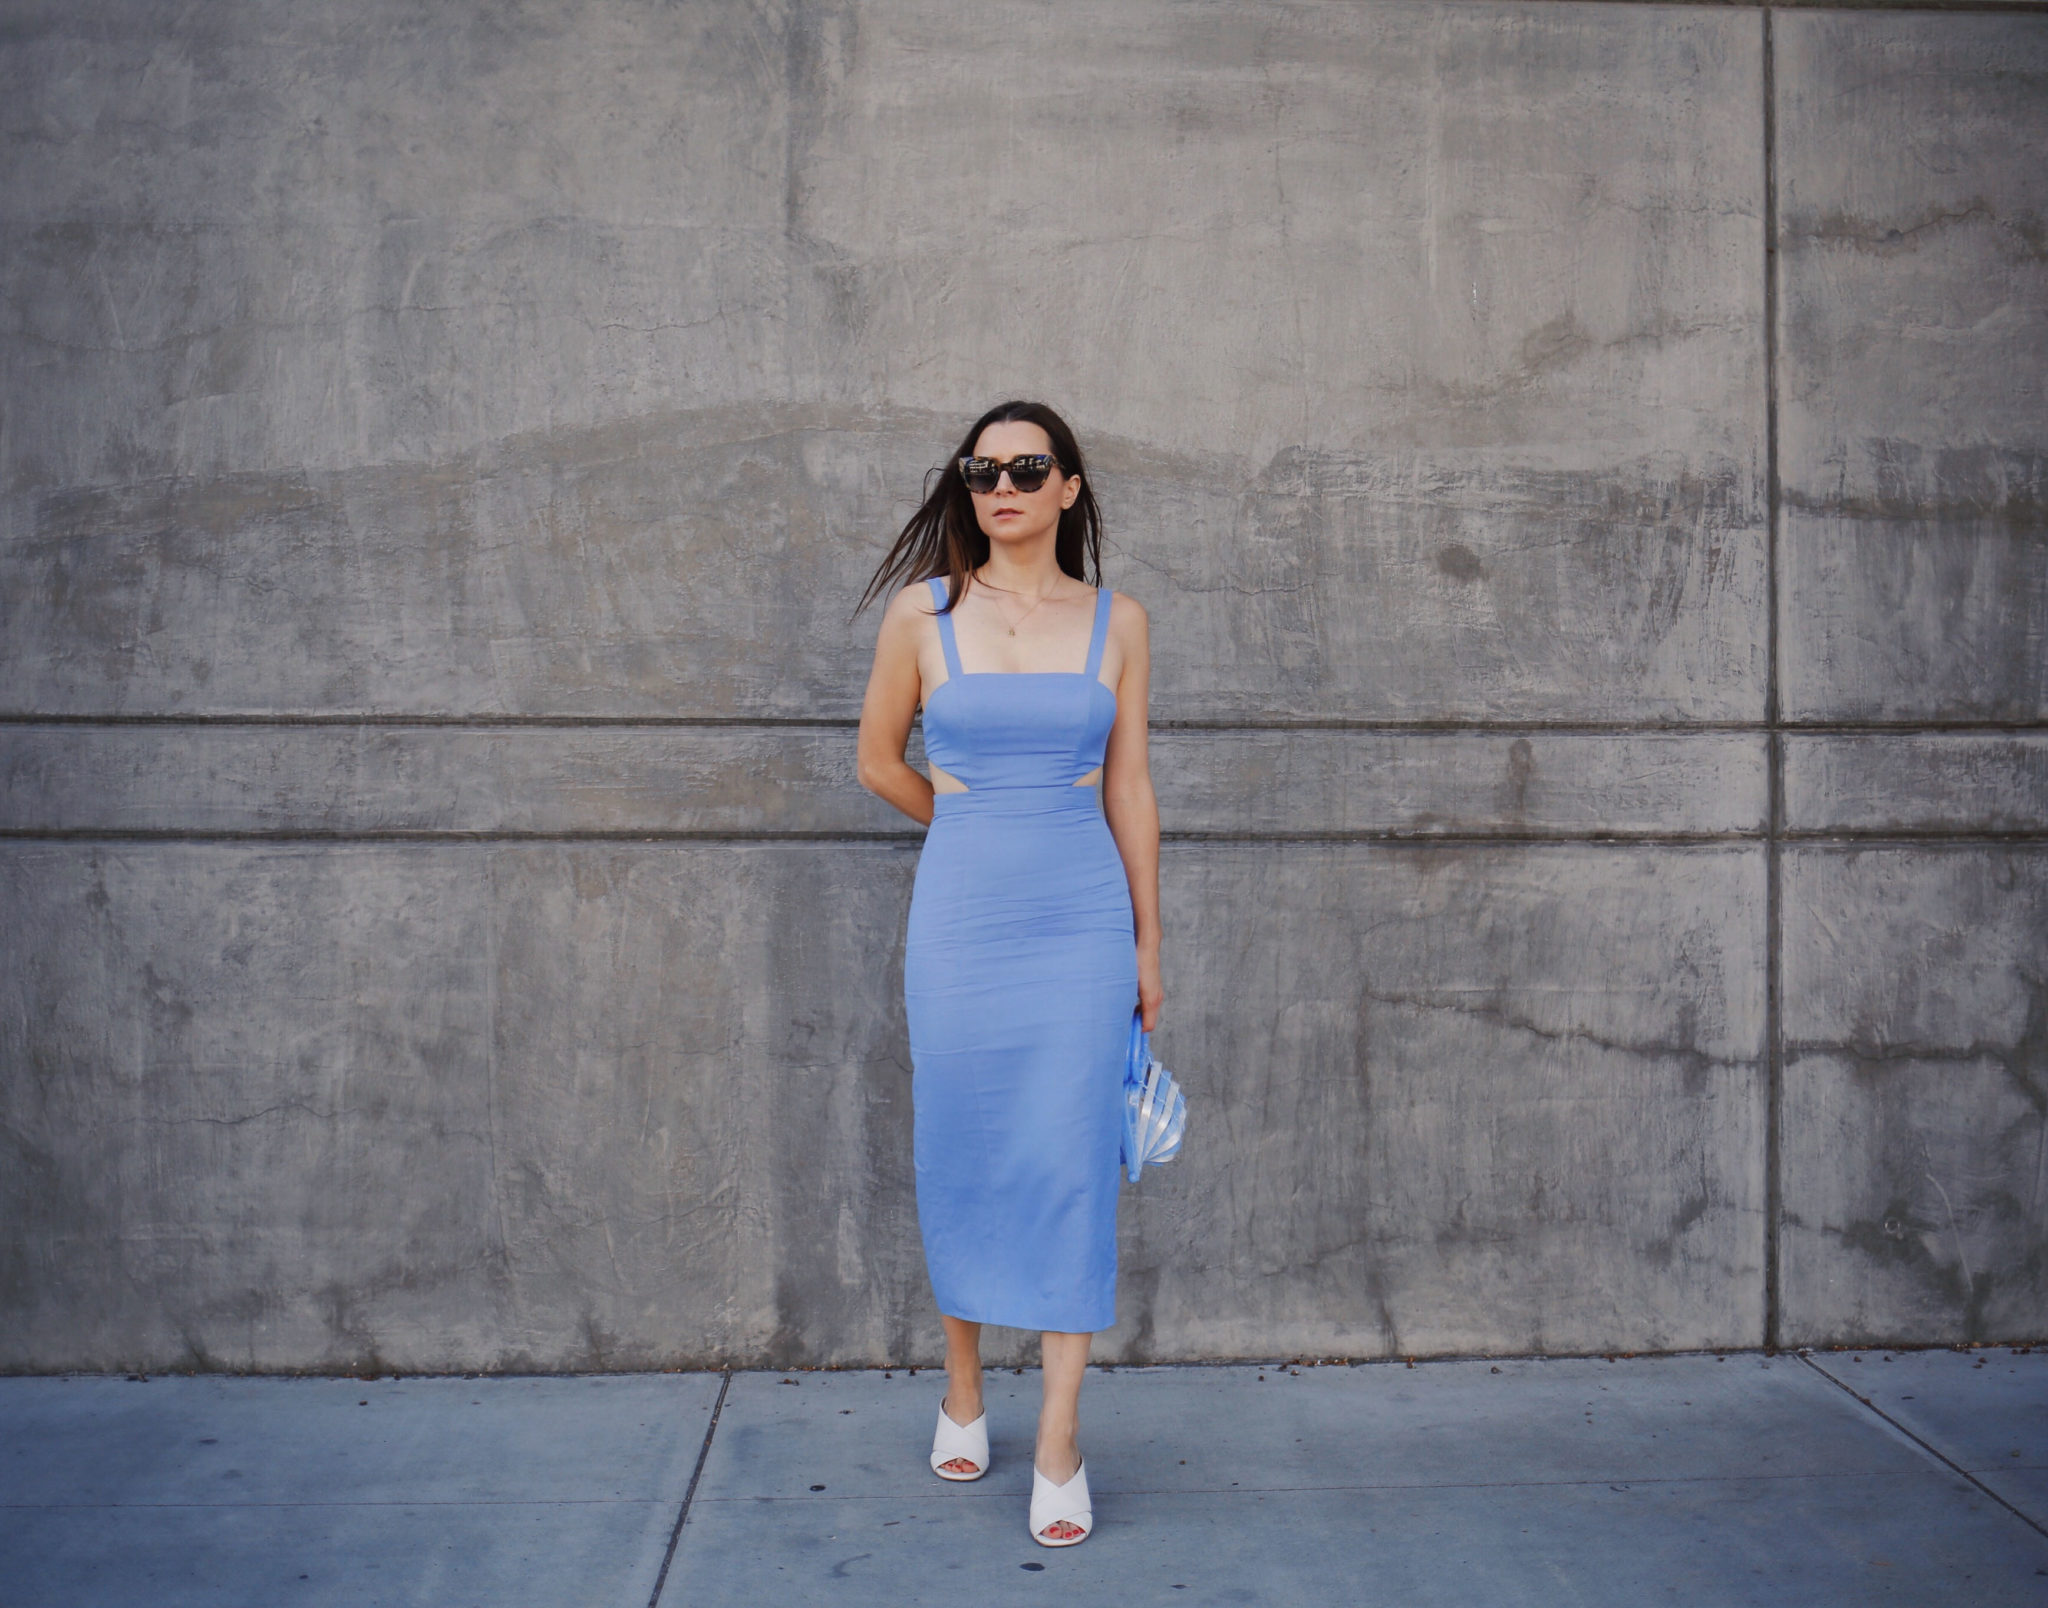 Fame and Partners Linen Dress - Summer dresses under $200 - Retro dresses on Houseofcomil.com